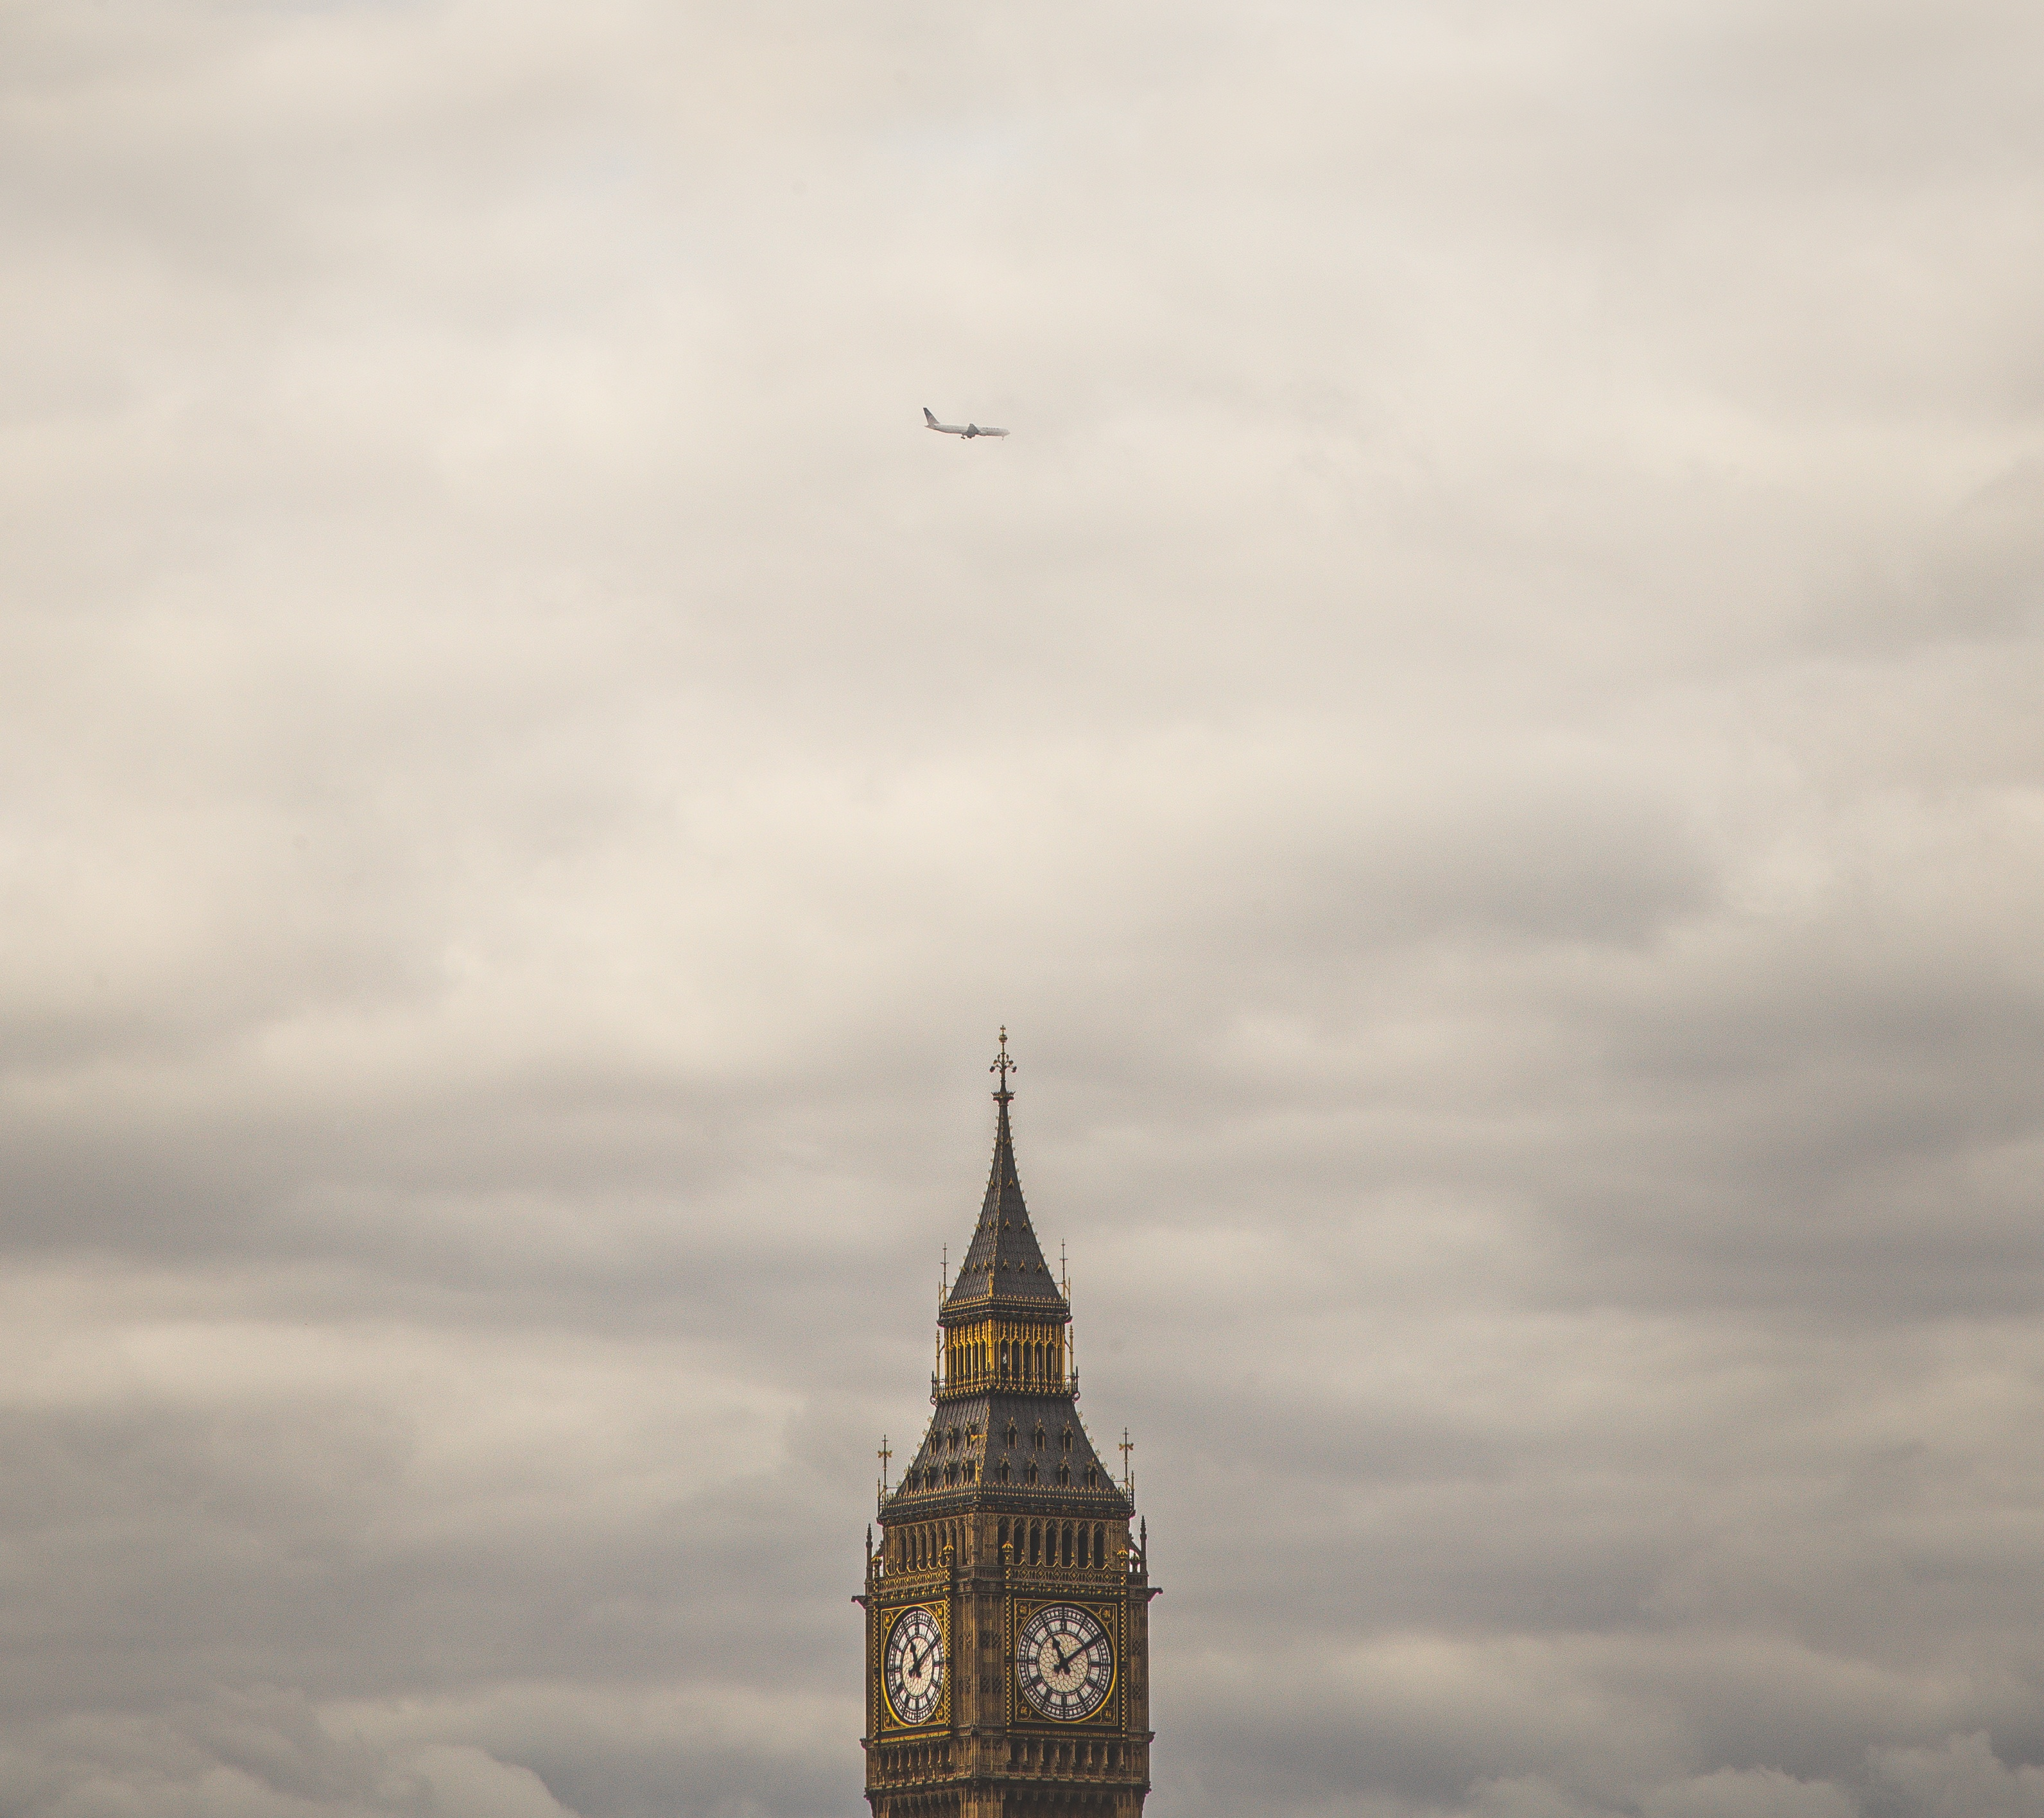 London Big Ben Flugzeug stocksnap